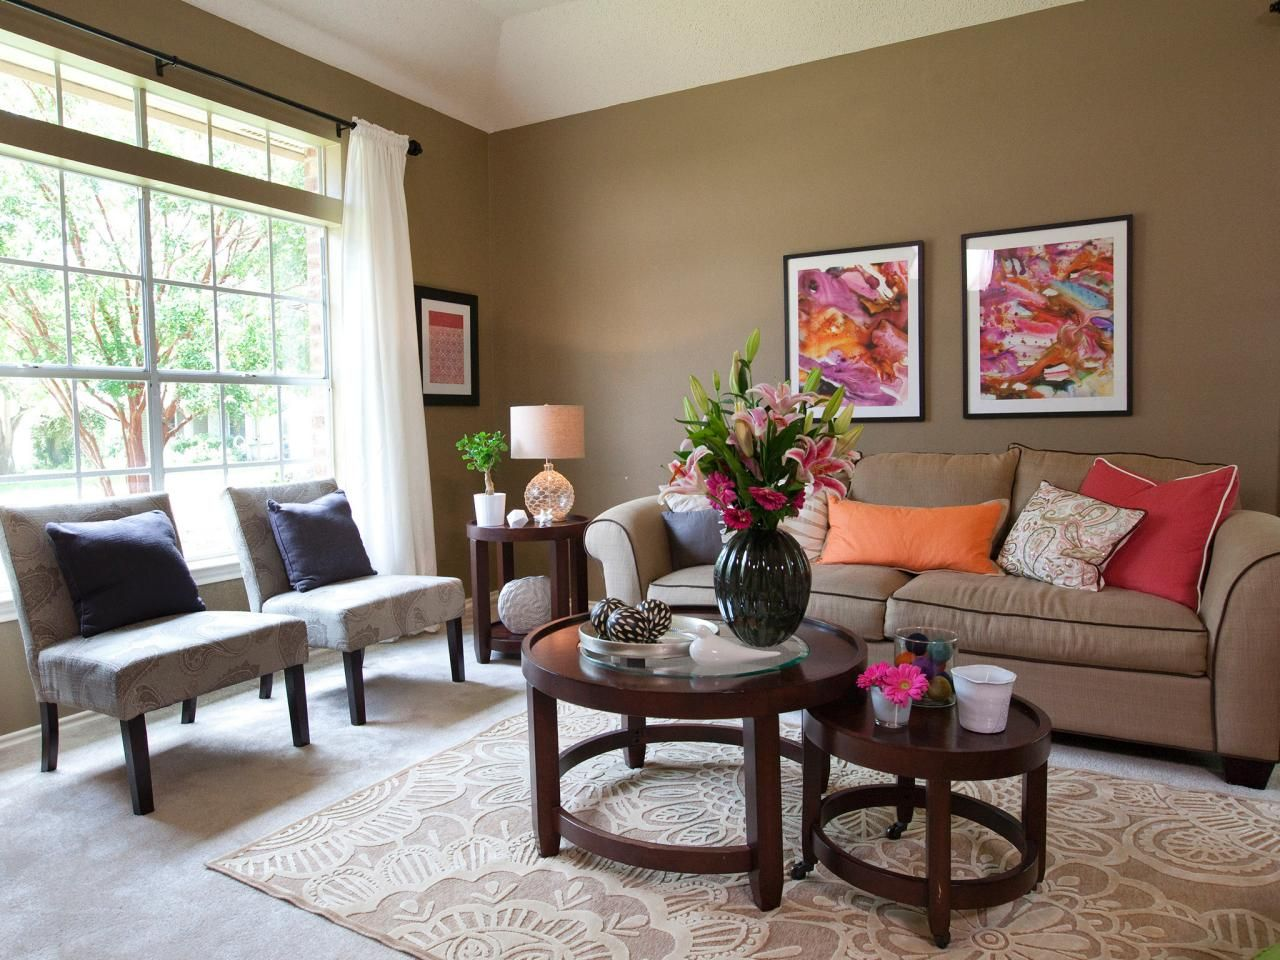 this lively living room features an all-over earthy taupe color